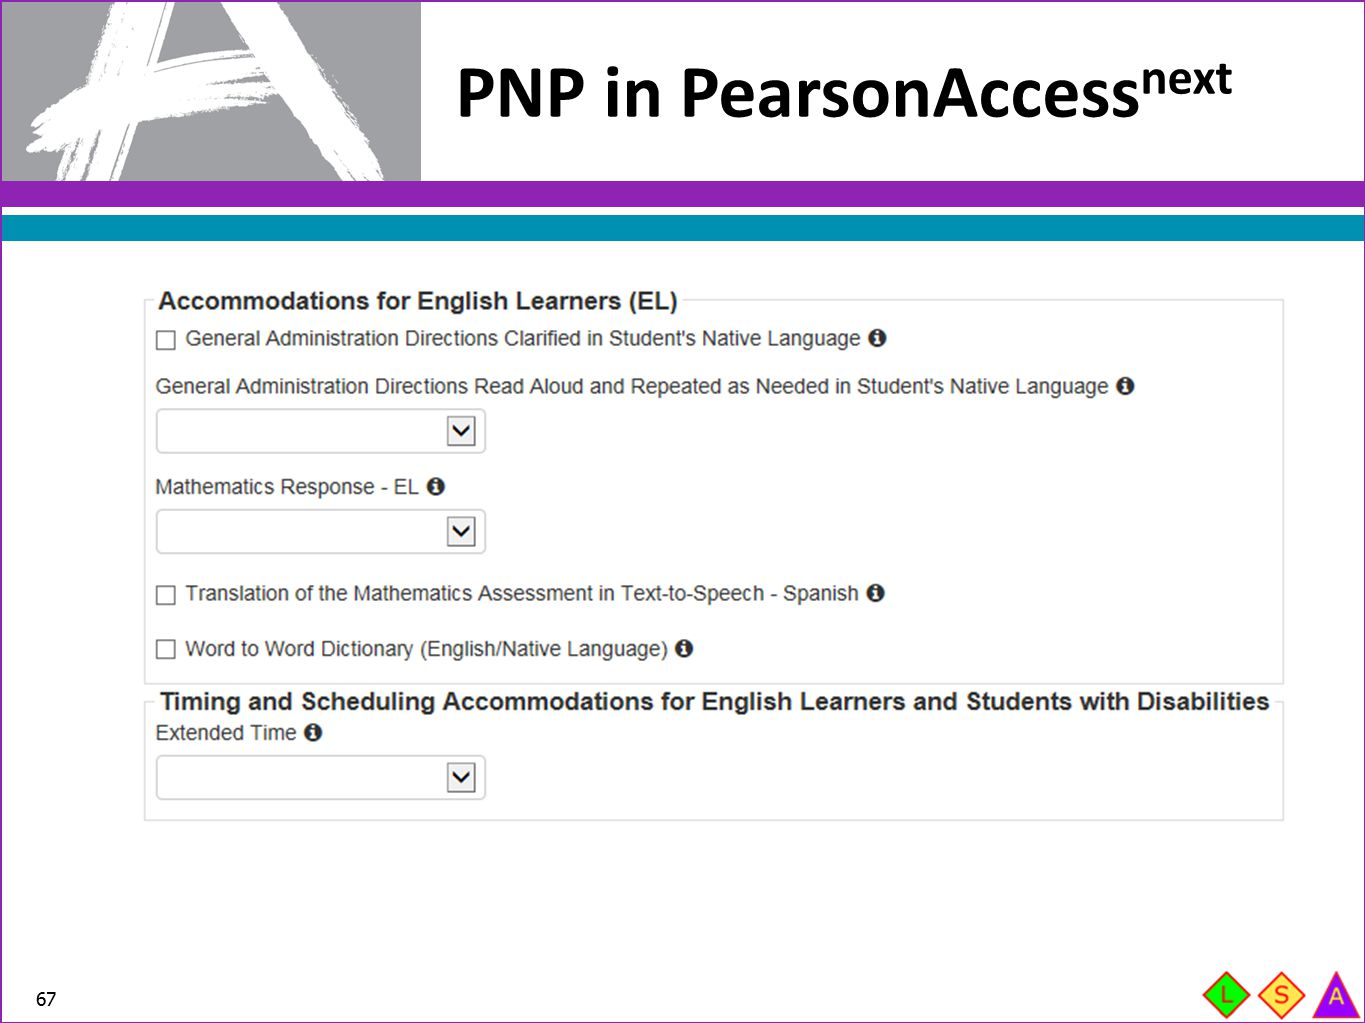 PNP in PearsonAccessnext